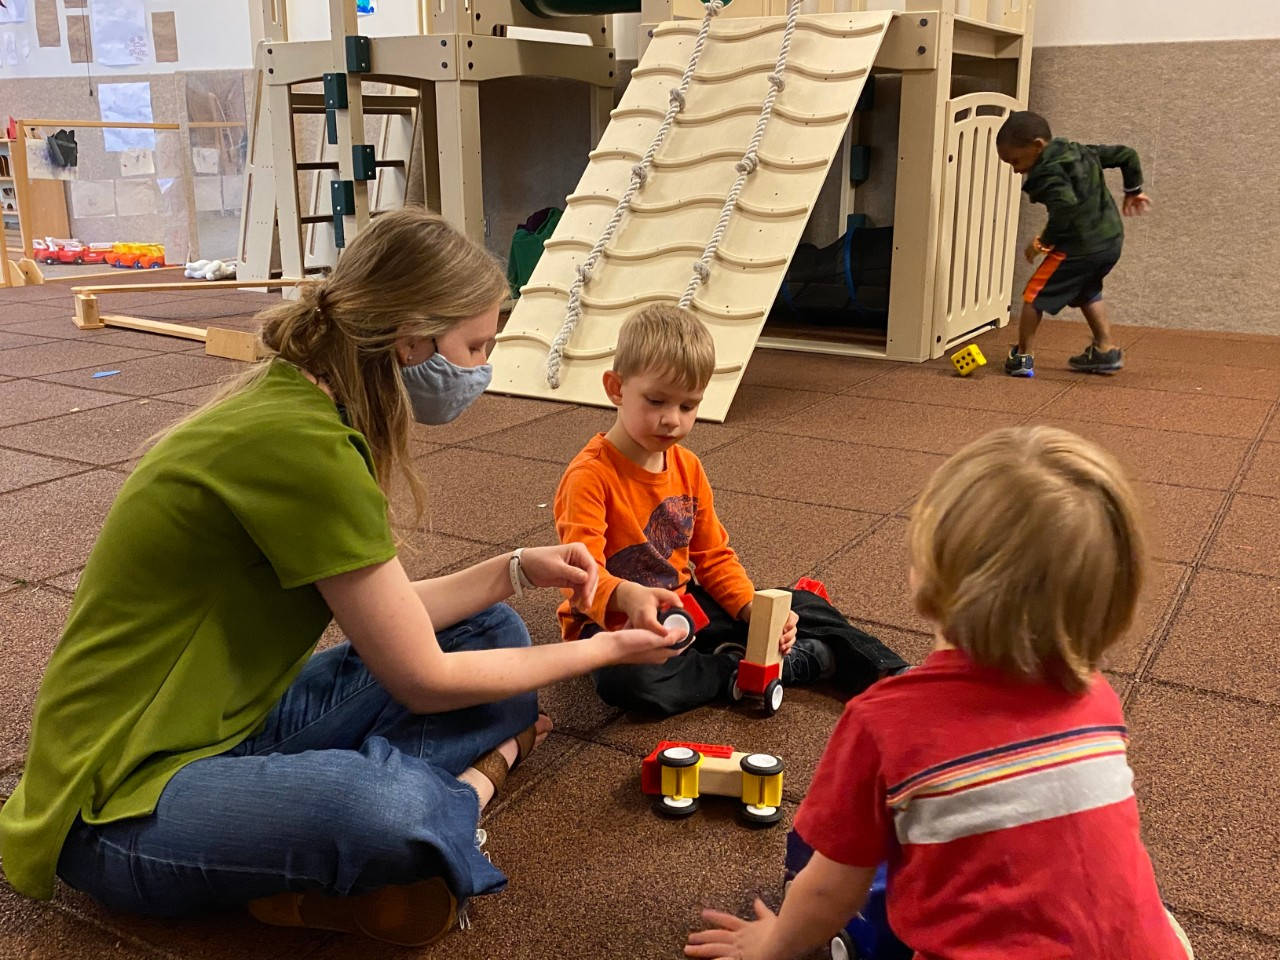 """Hanna Berwanger, CECH '15, '20, works in the Phyllis Goldsmith Levinson Playroom at the Arlitt Center, an indoor gross-motor play space affectionately dubbed the """"muscle room."""""""